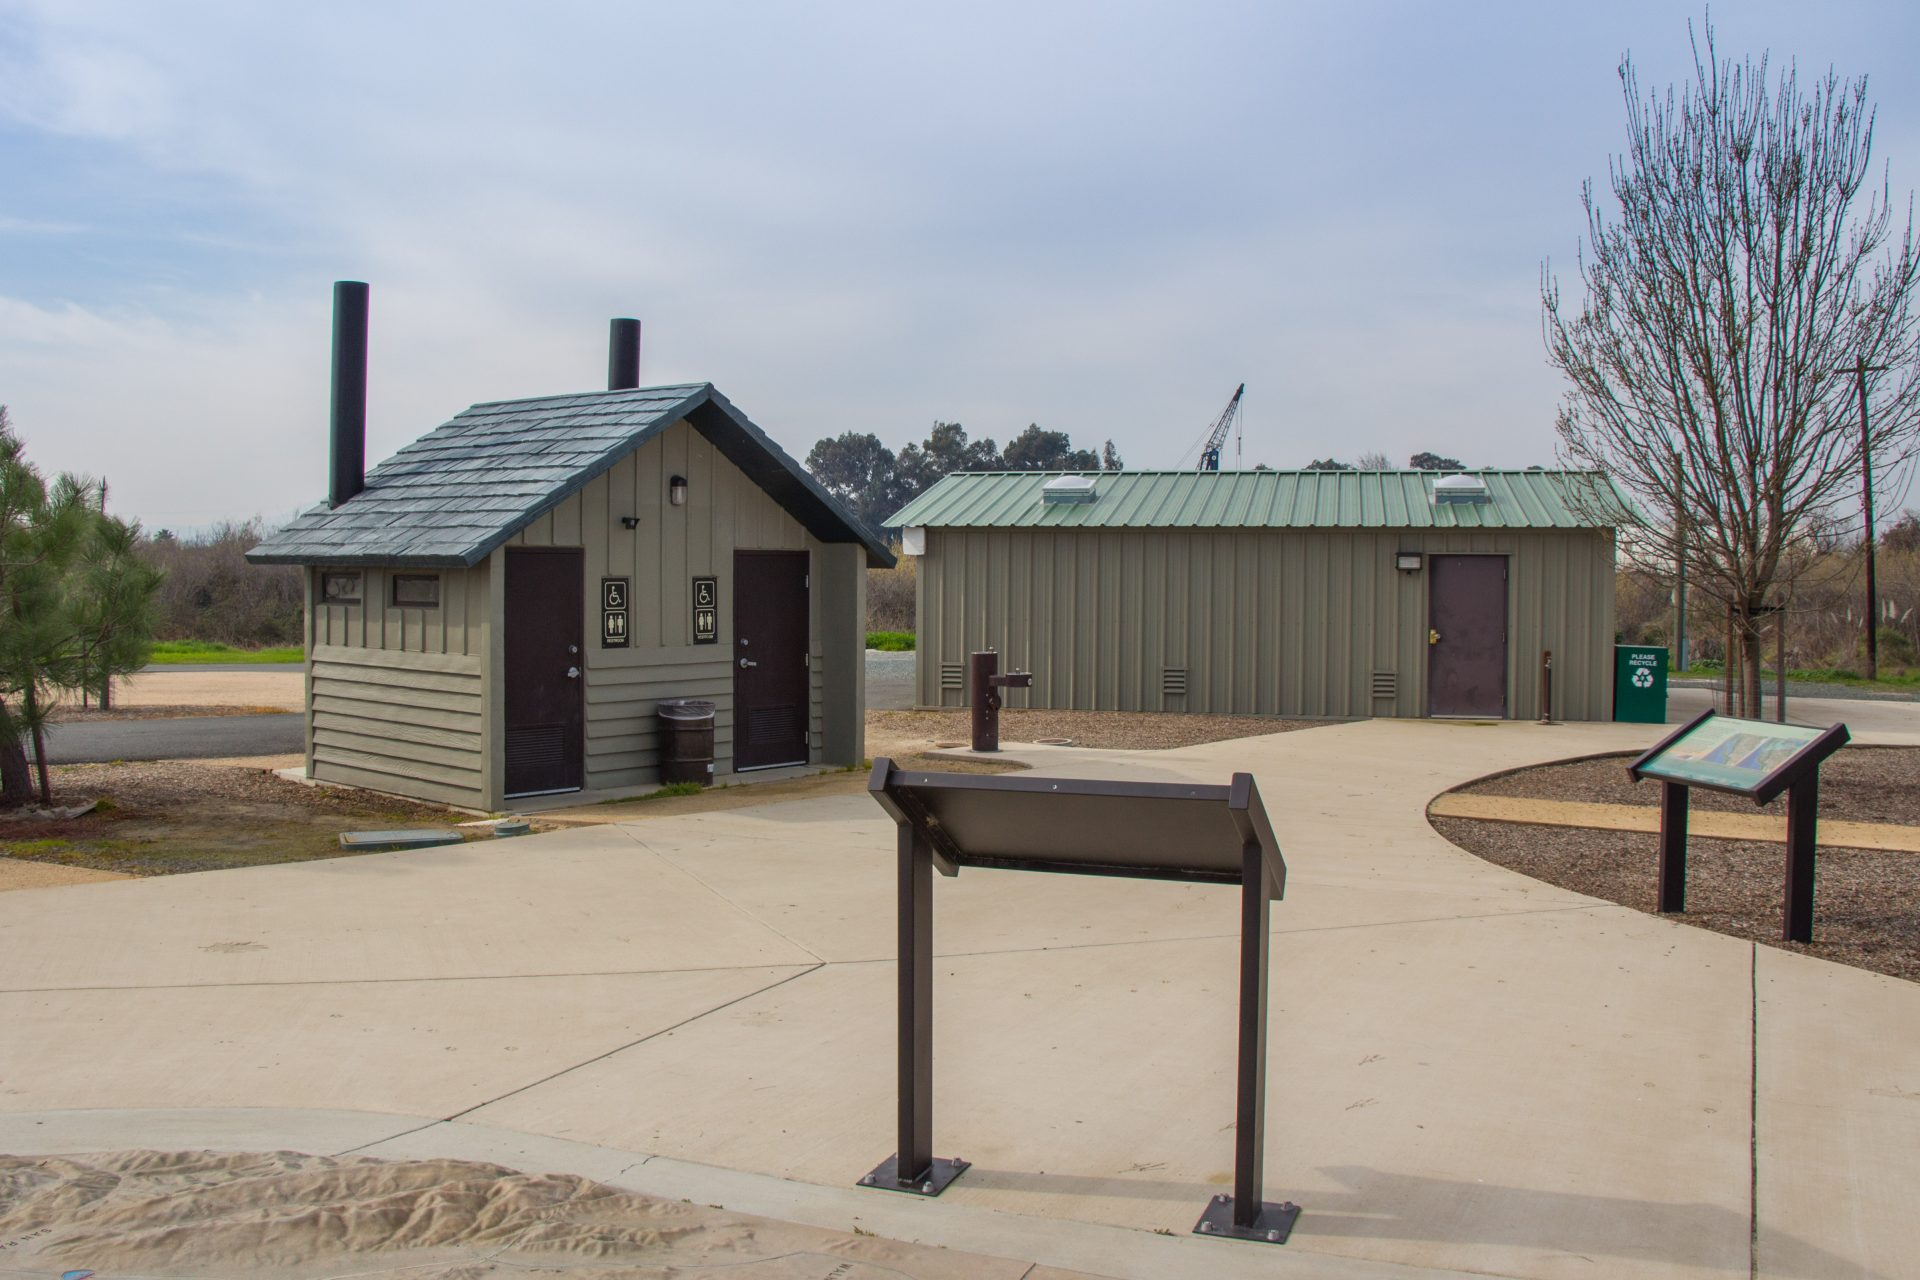 paved area with interpretive panels, bathrooms and shed